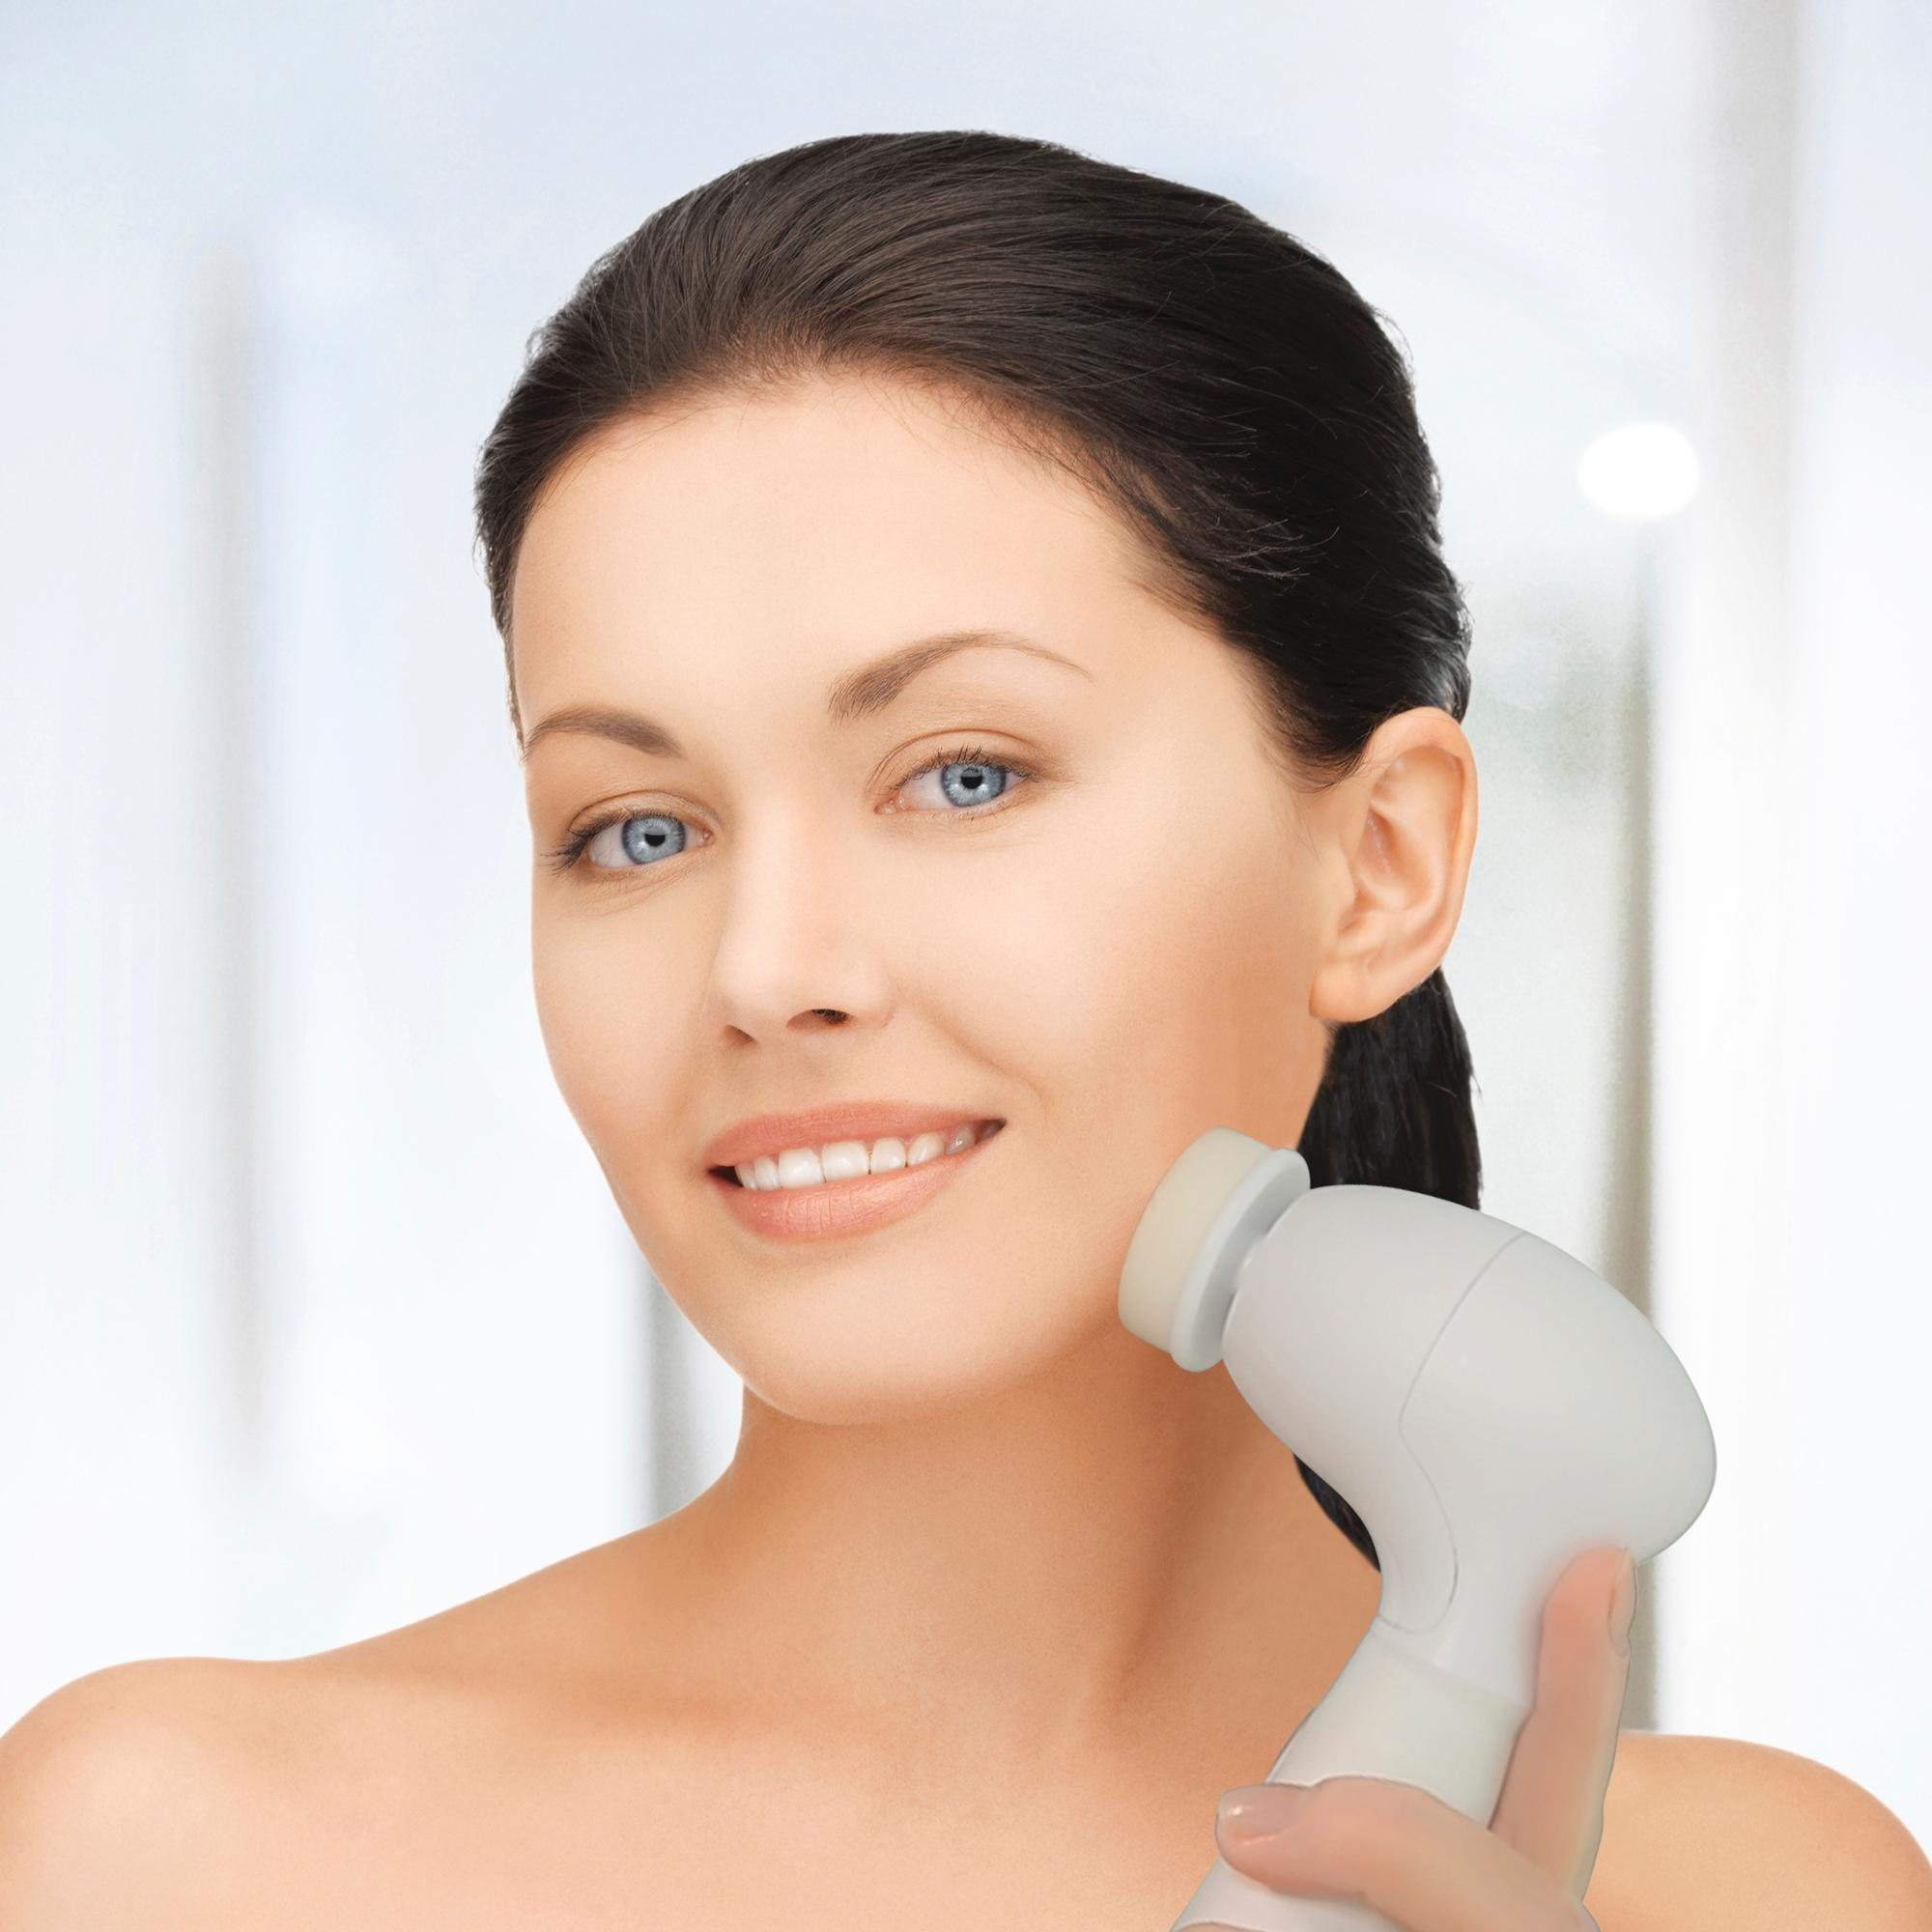 Spa Skin Care: Amazon.com: Spa Sonic Skin Care System Face And Body